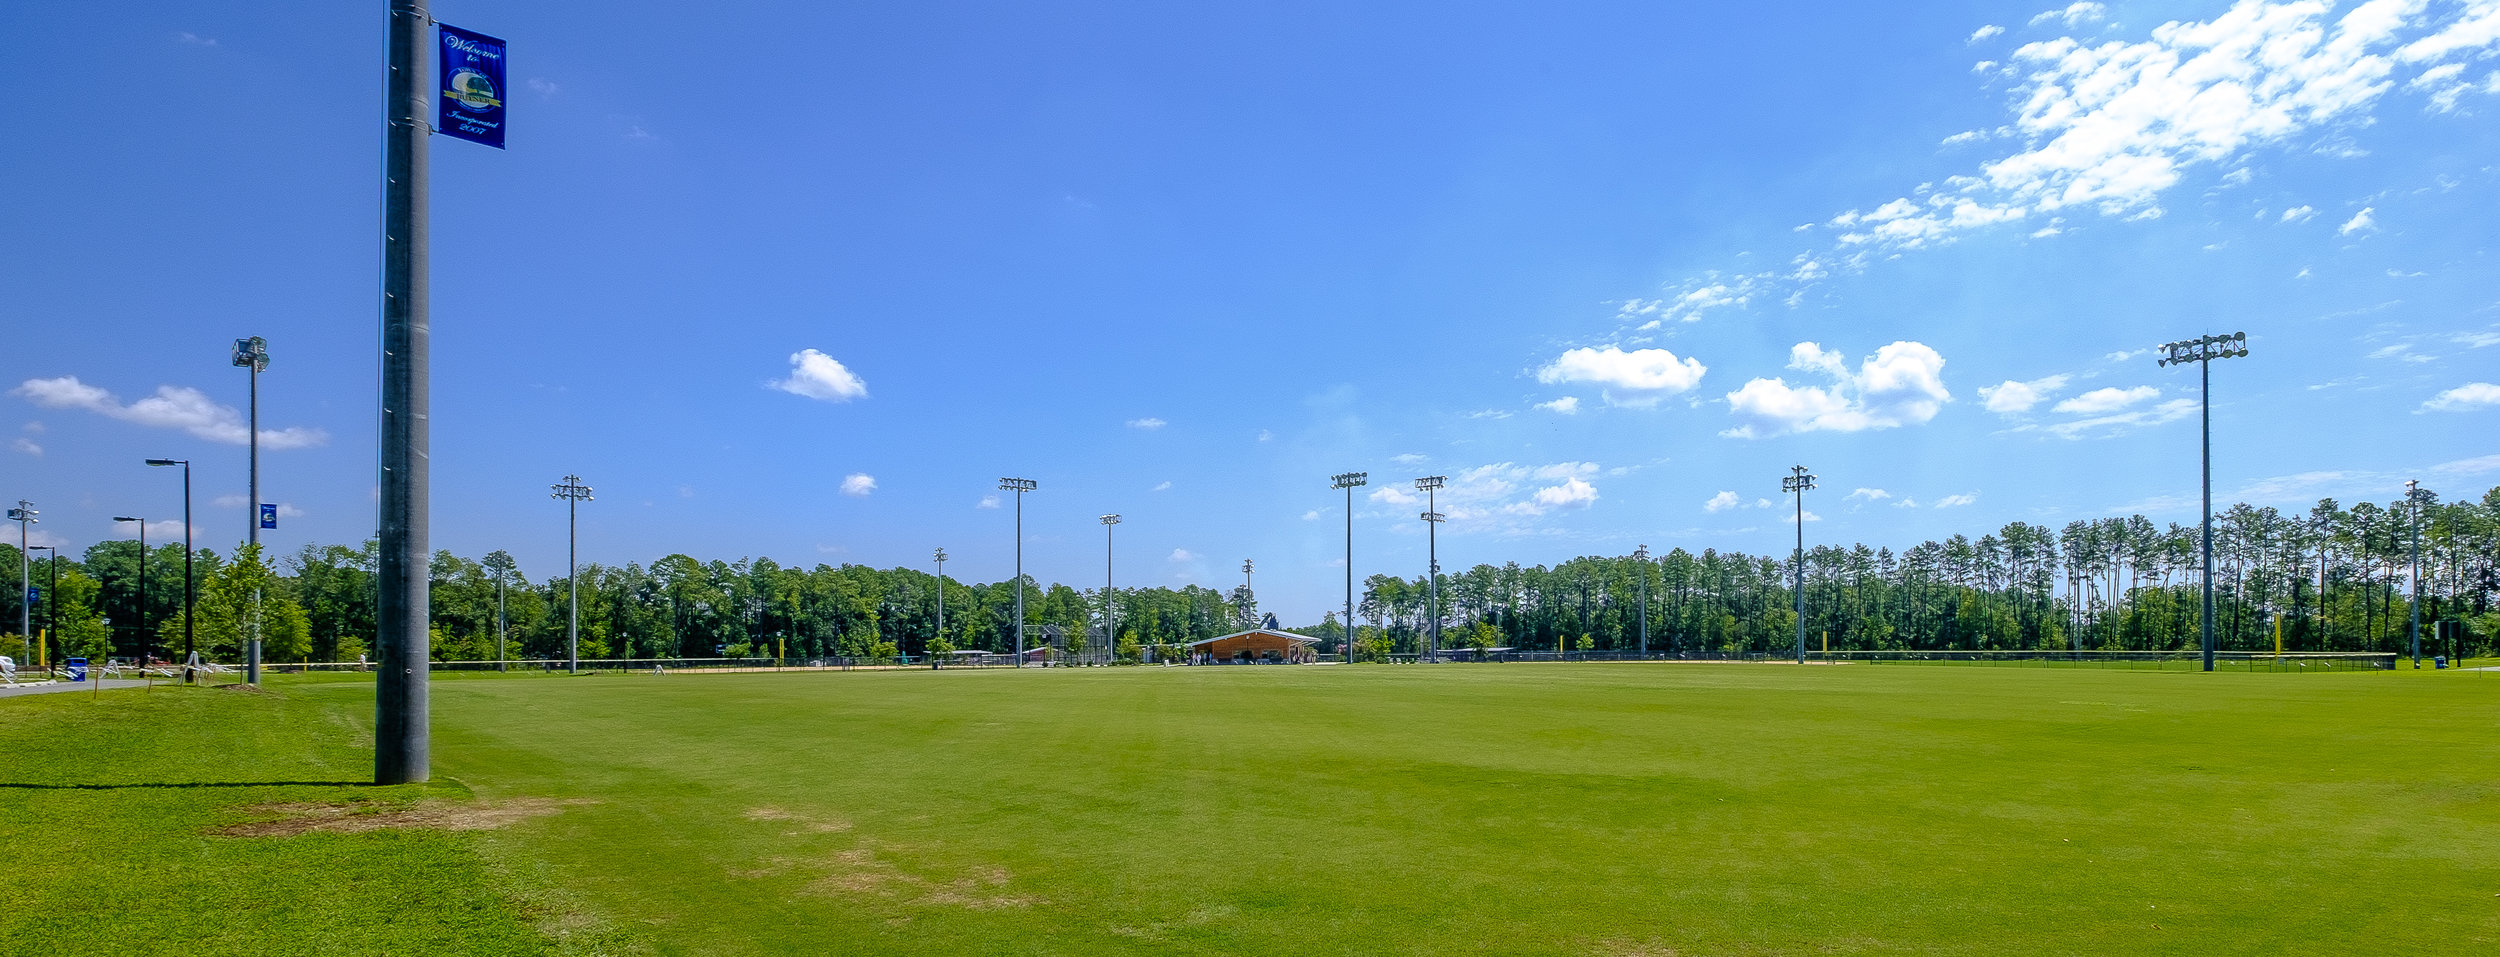 Butner Athletic Park-006.jpg